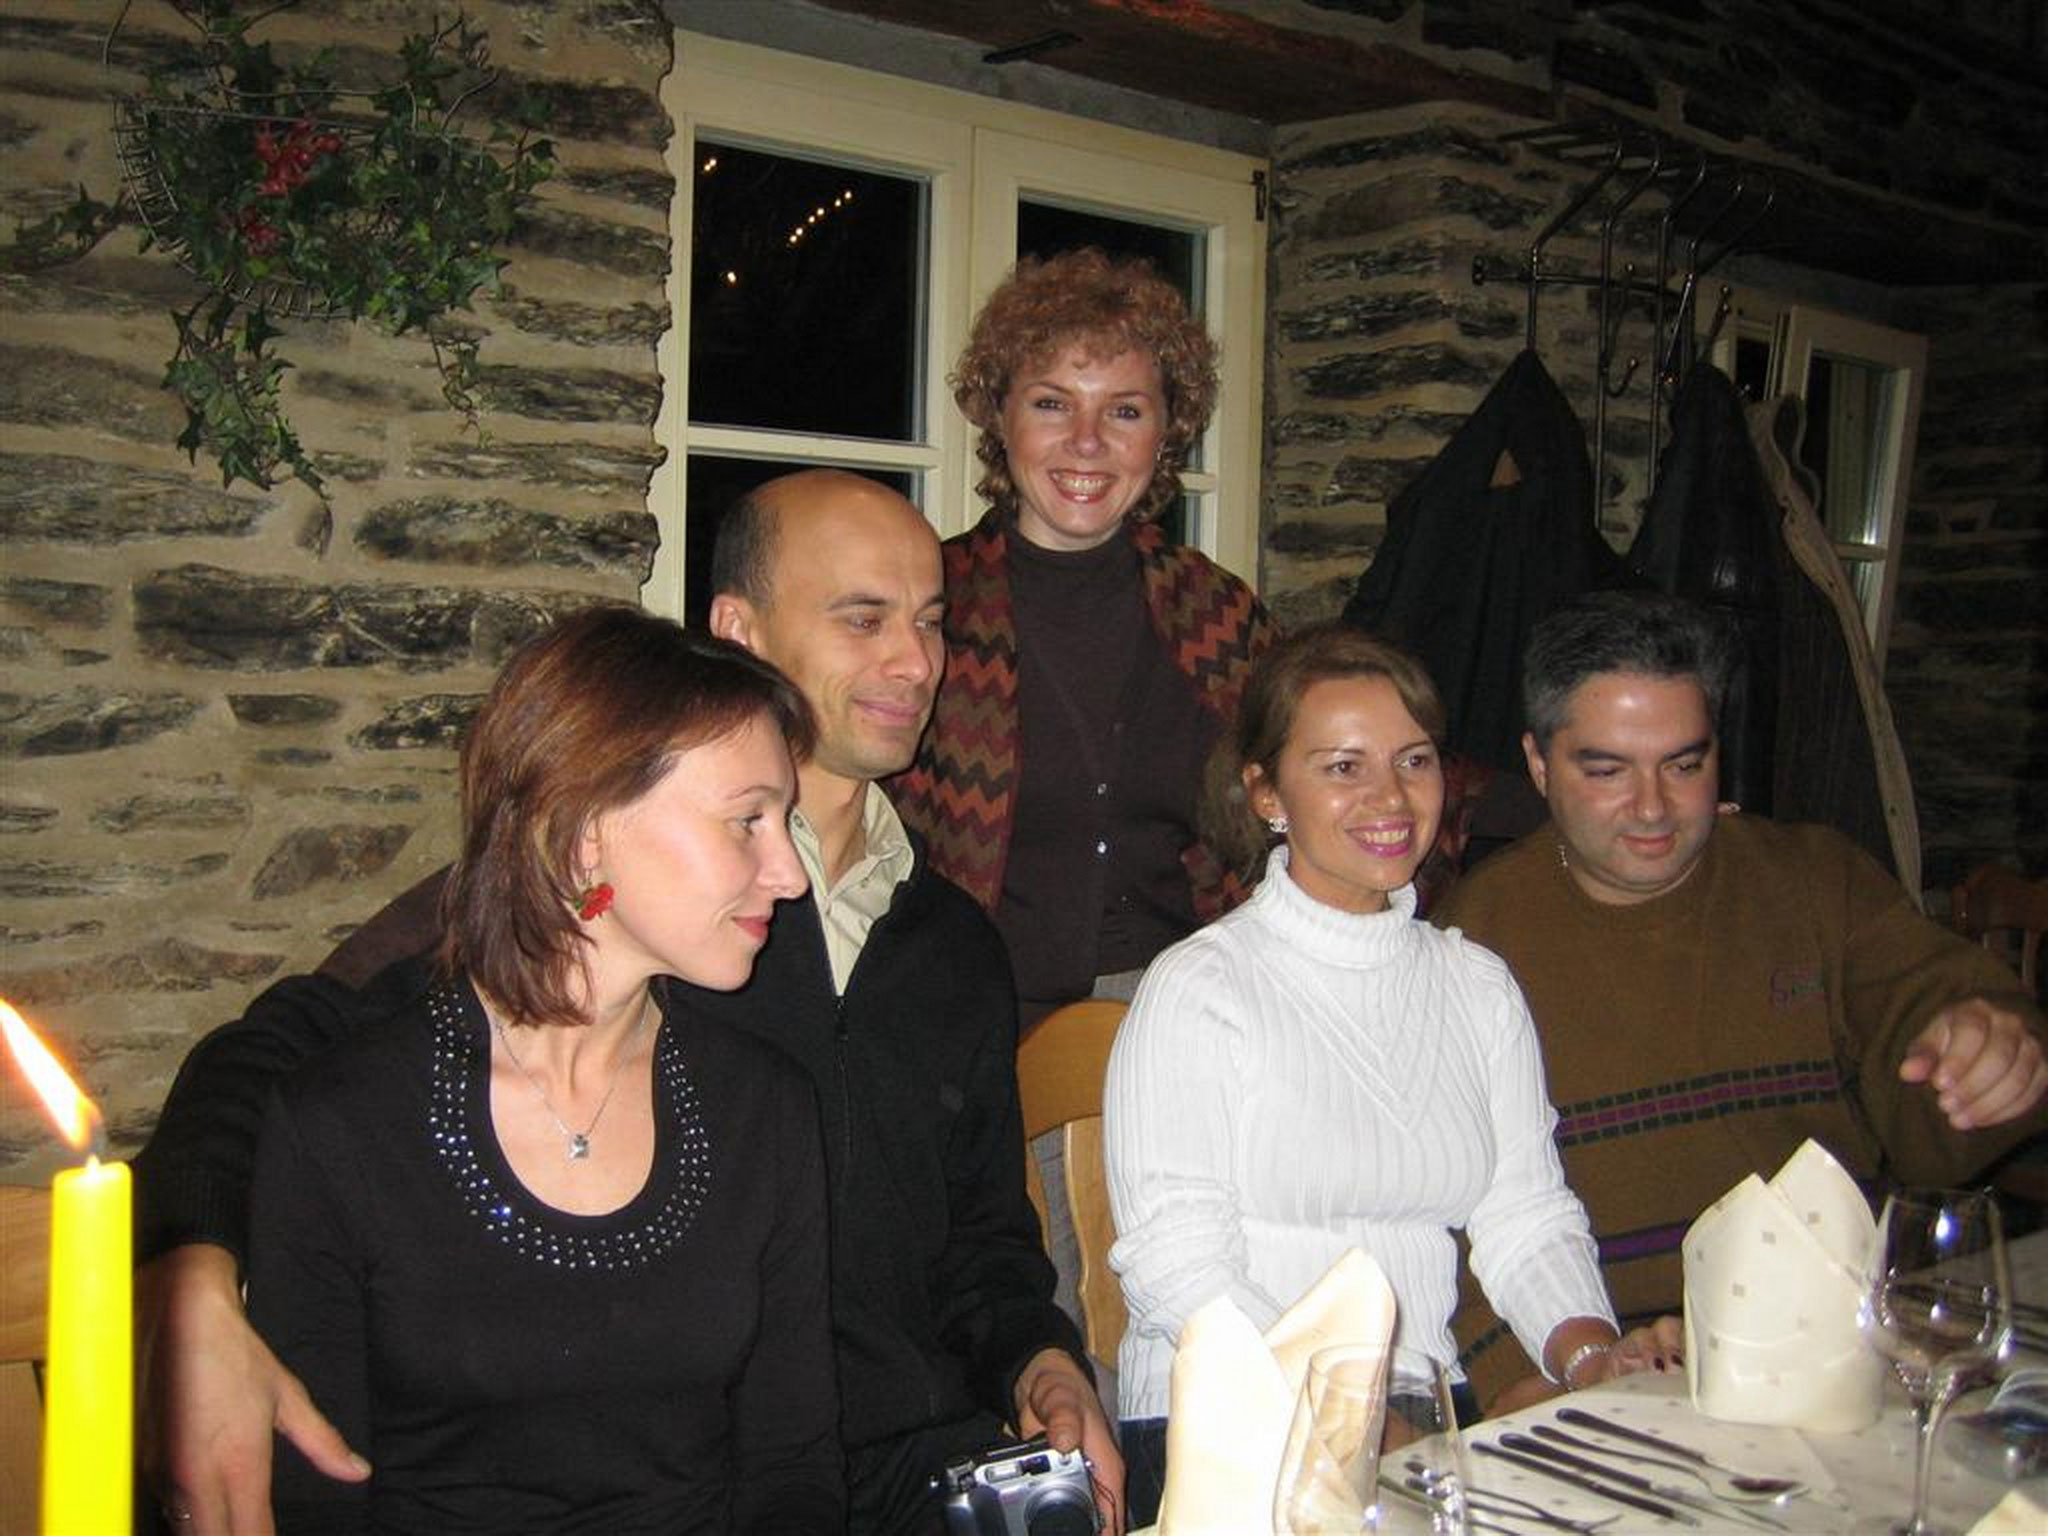 Seminar guests in Aachen - here Cyprus, Estonia and Russia